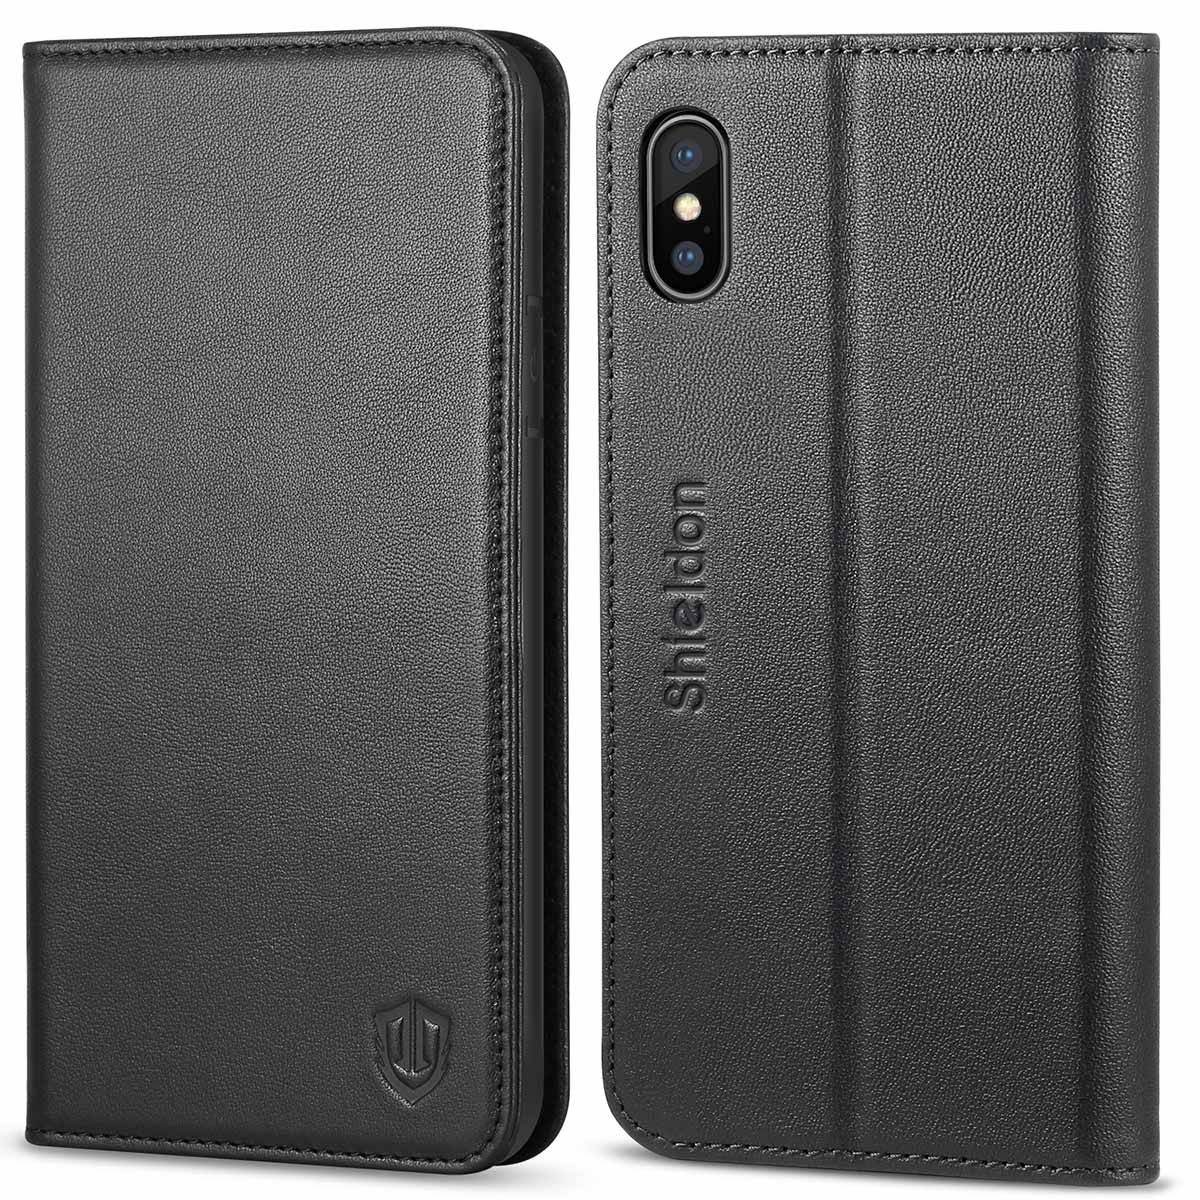 new style fc785 d836c SHIELDON iPhone X Genuine Leather Wallet Flip Cover, iPhone 10 Case with  Magnetic Closure, Kickstand Function